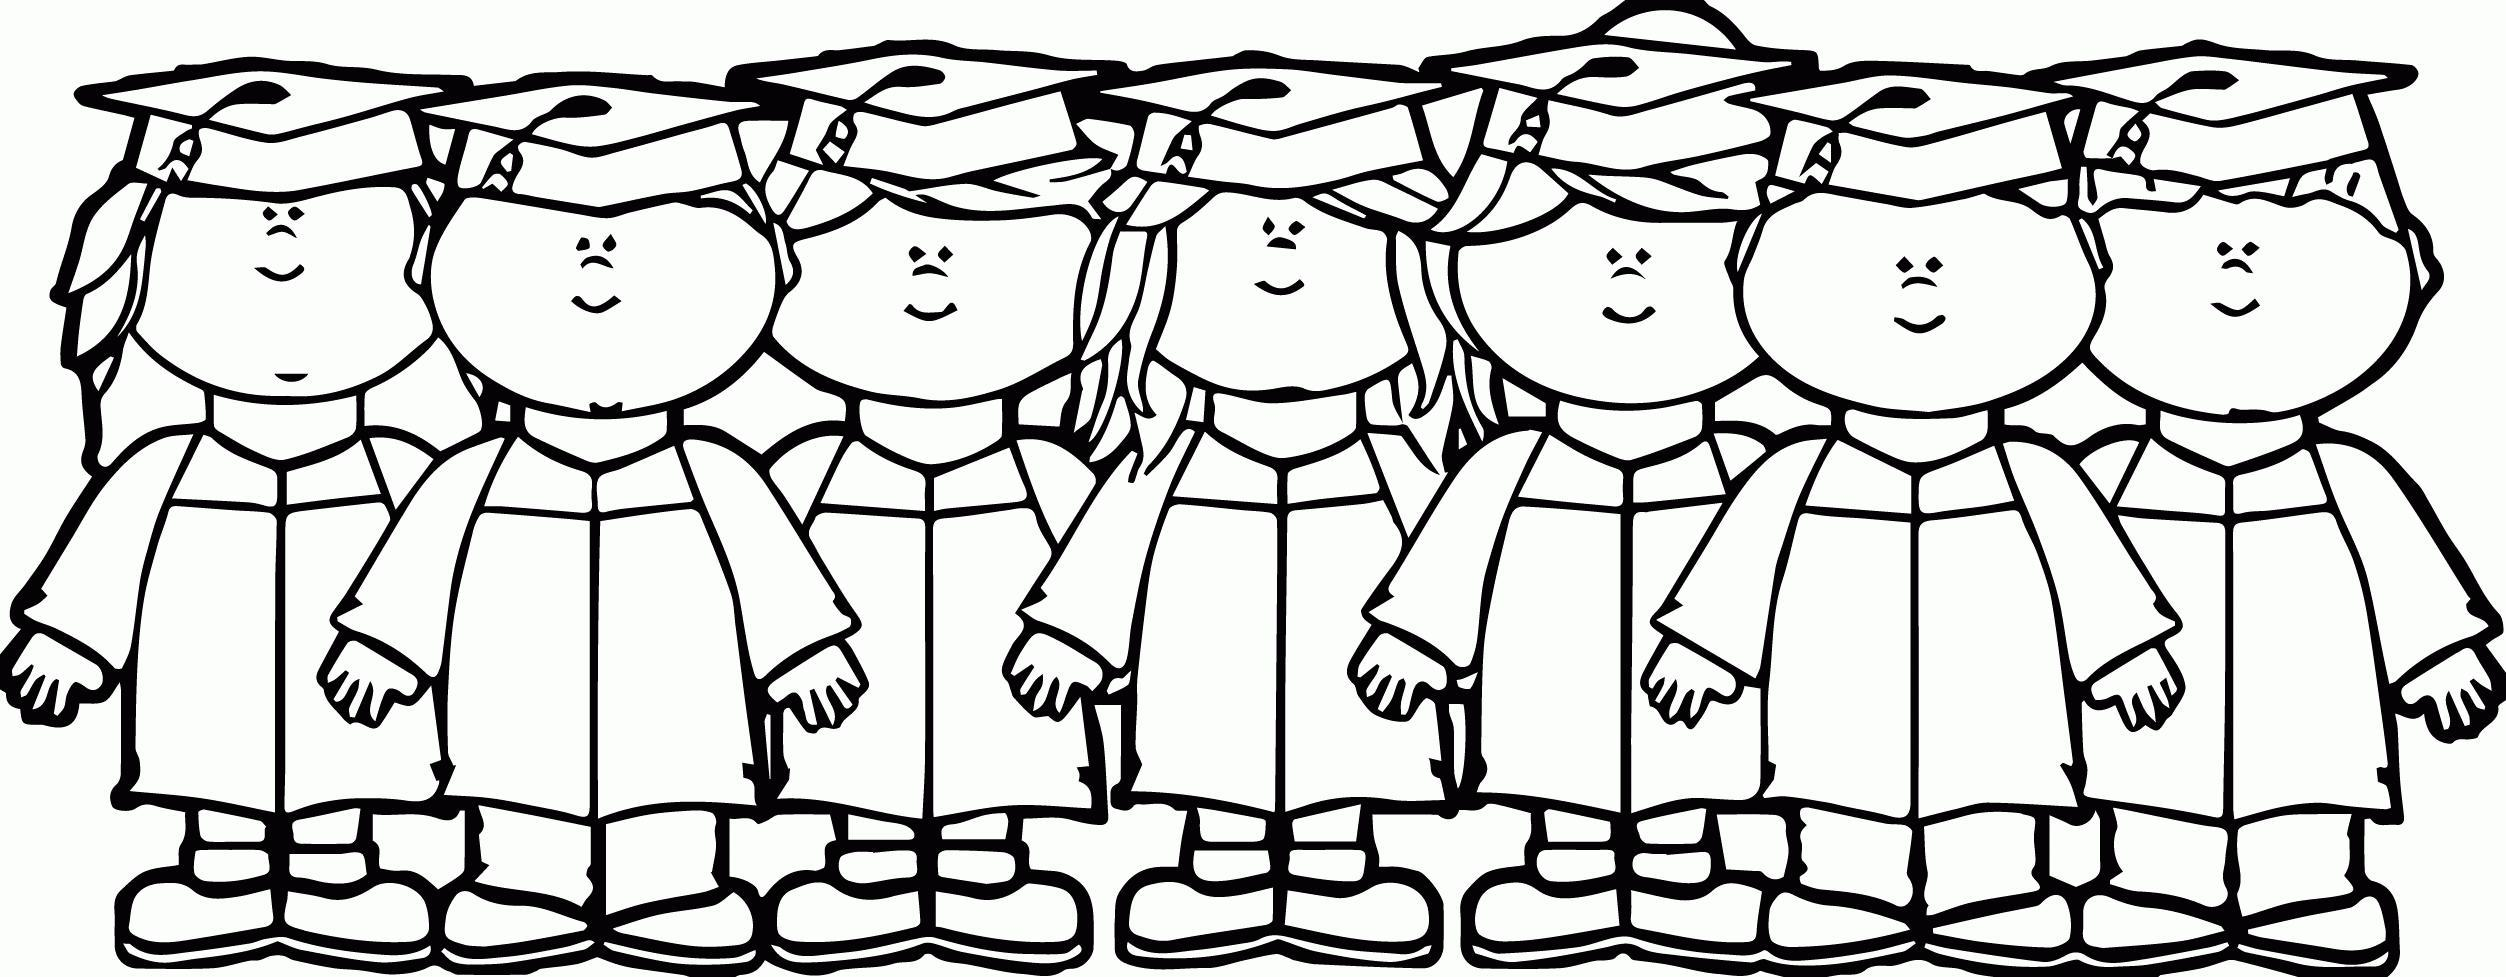 2506x977 Graduation Coloring Pages